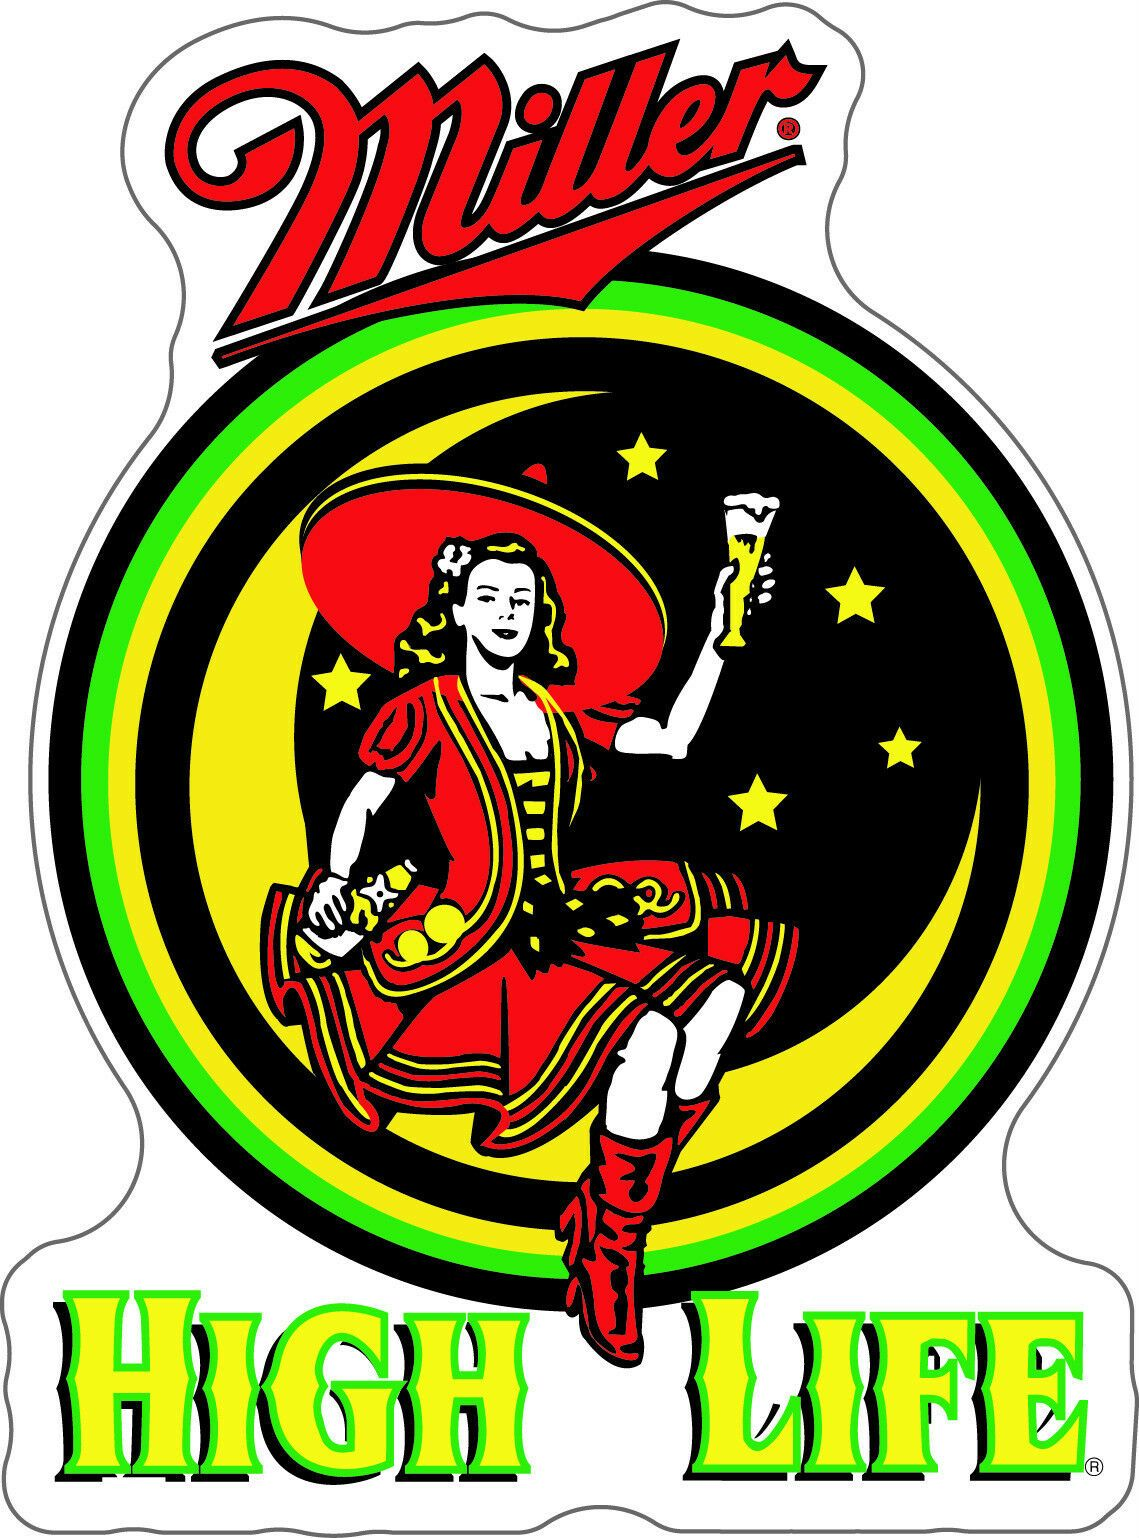 MILLER High Life Sticker Decal DIFFERENT SIZES Beer Bumper